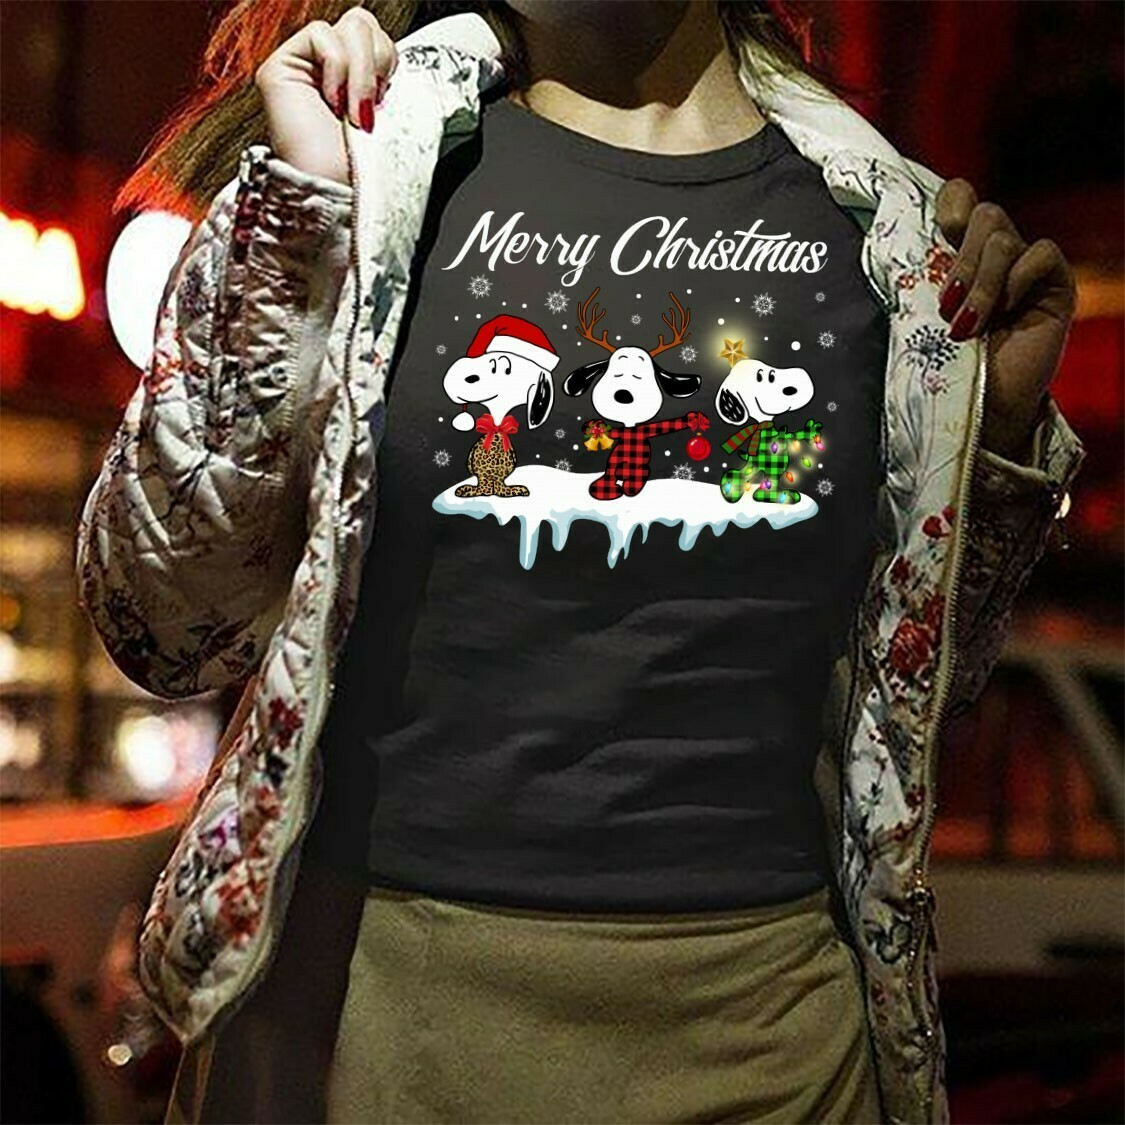 Merry Christmas Snoopy Lumberjack Buffalo Plaid Snoopy And Friends Christmas Snoopy Woodstock Charlie Brown Gifts Noel Family Party T-Shirt Long Sleeve Sweatshirt Hoodie Jolly Family Gifts